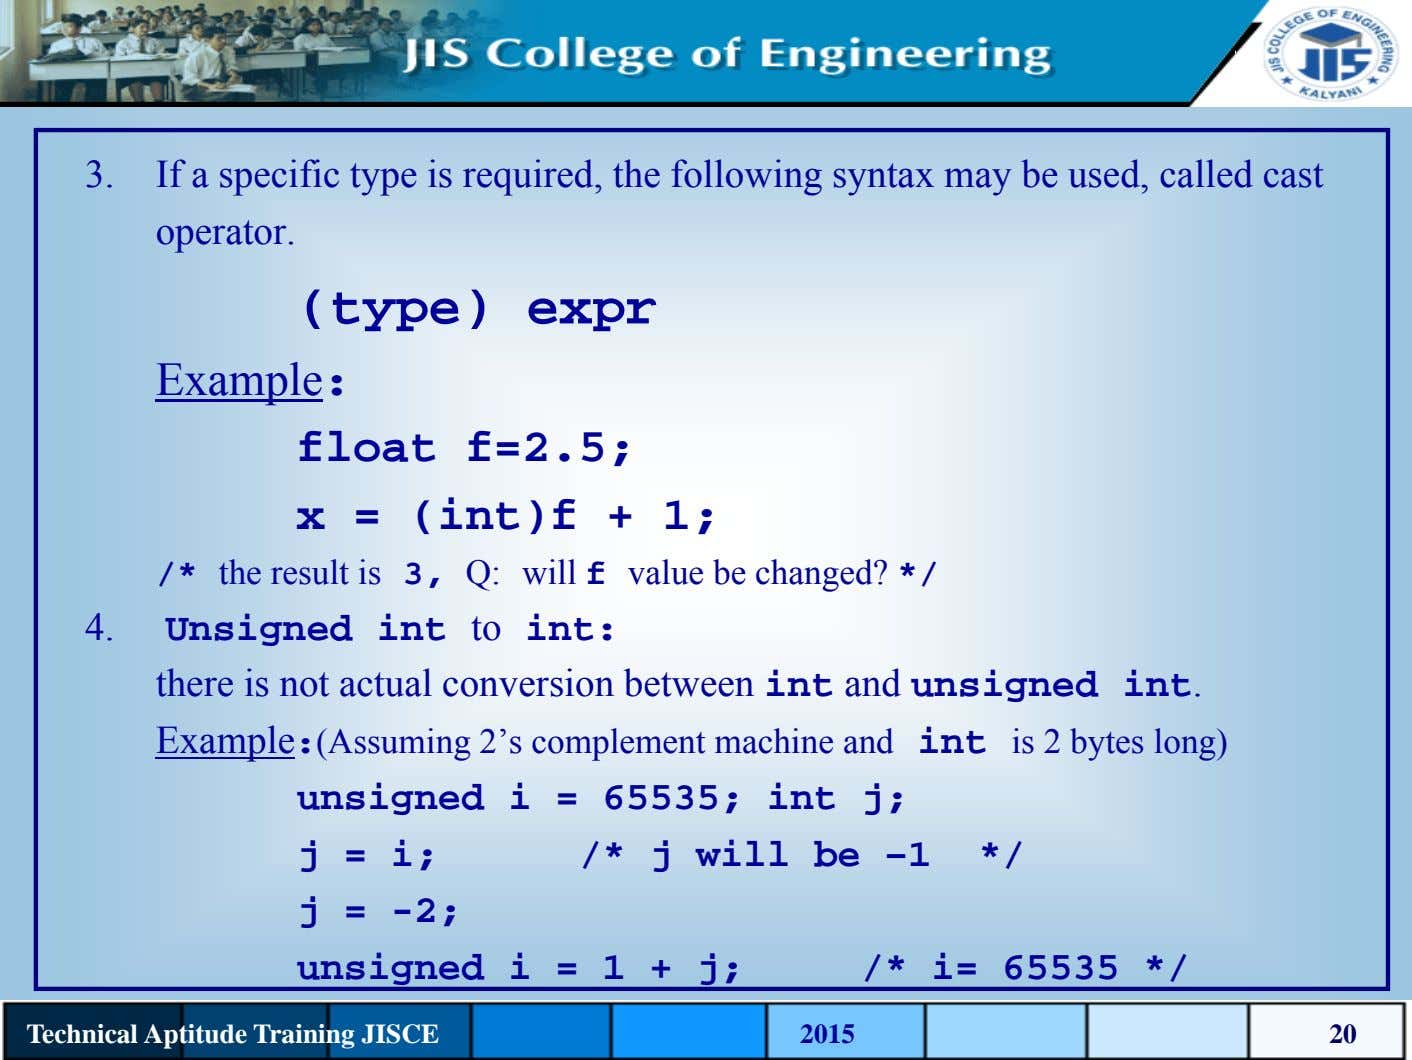 3. If a specific type is required, the following syntax may be used, called cast